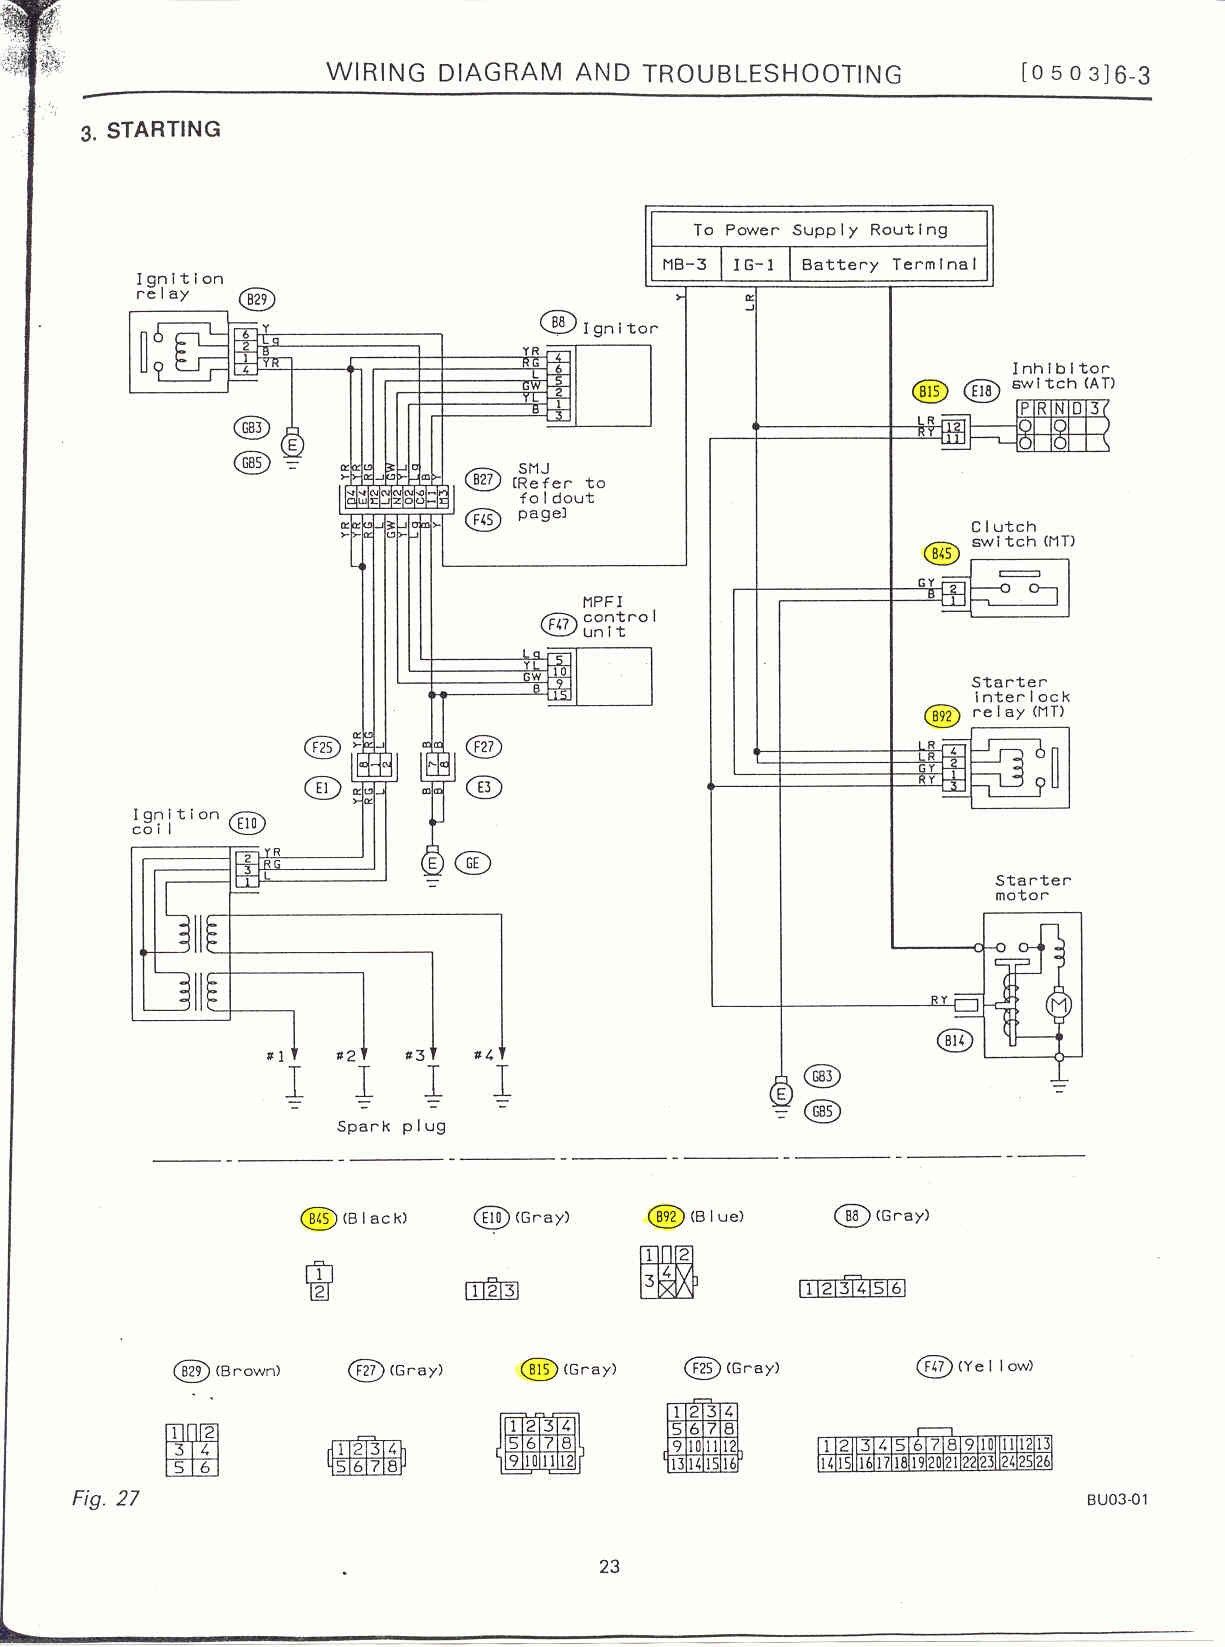 subaru liberty wiring diagram wiring diagram and schematic subaru stereo wiring diagramsubaru forester radio diagram 2017 subaru outback 2 5i premium how to disable drl and